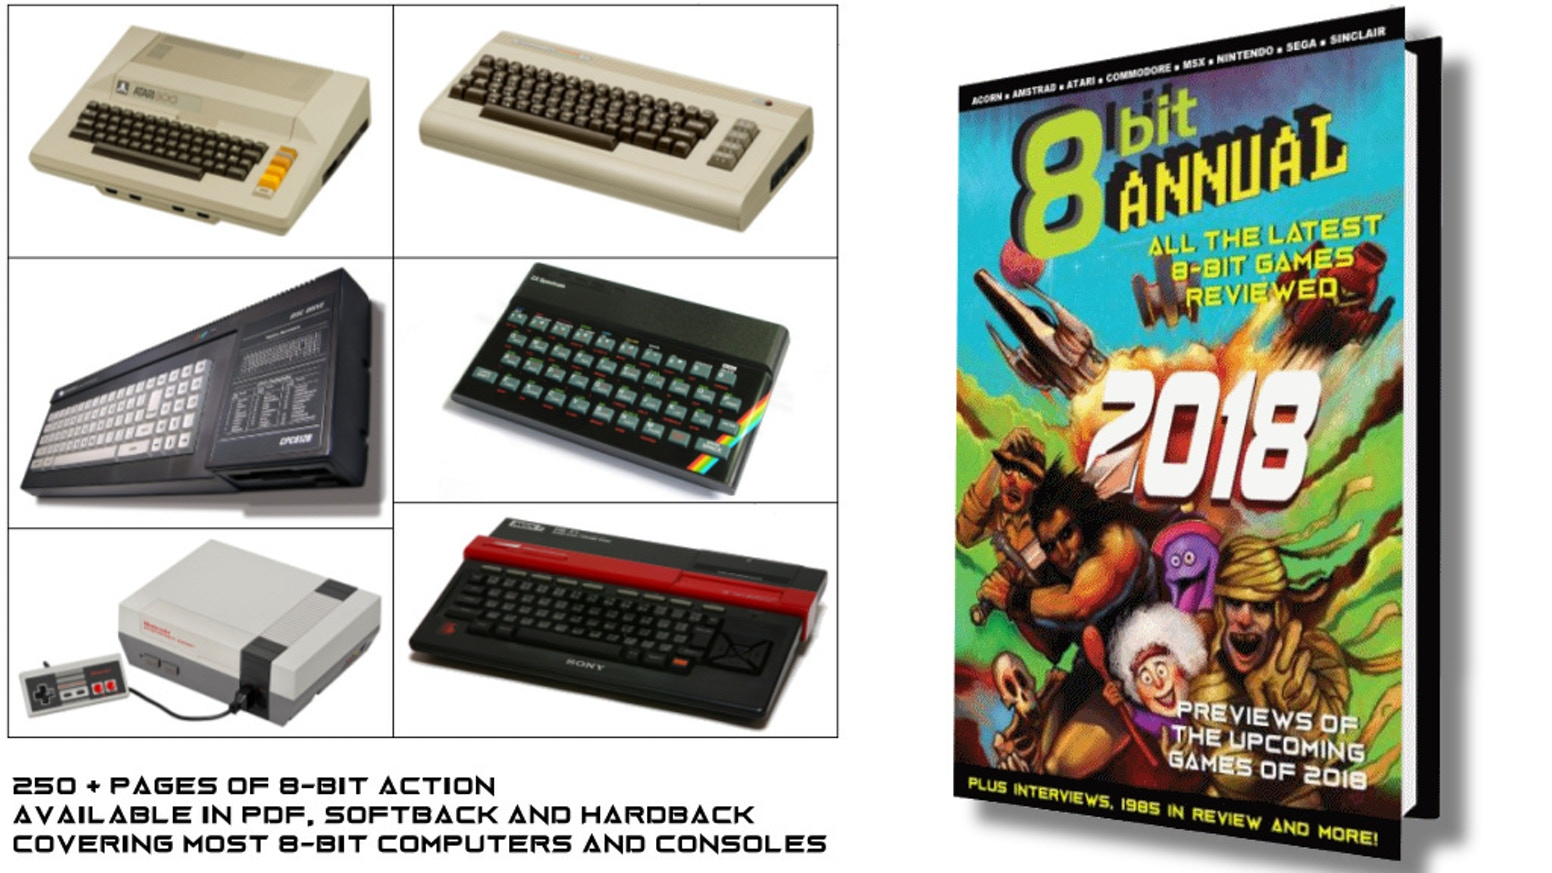 8 Bit Annual 2018 (for 8-bit computers and consoles) by John